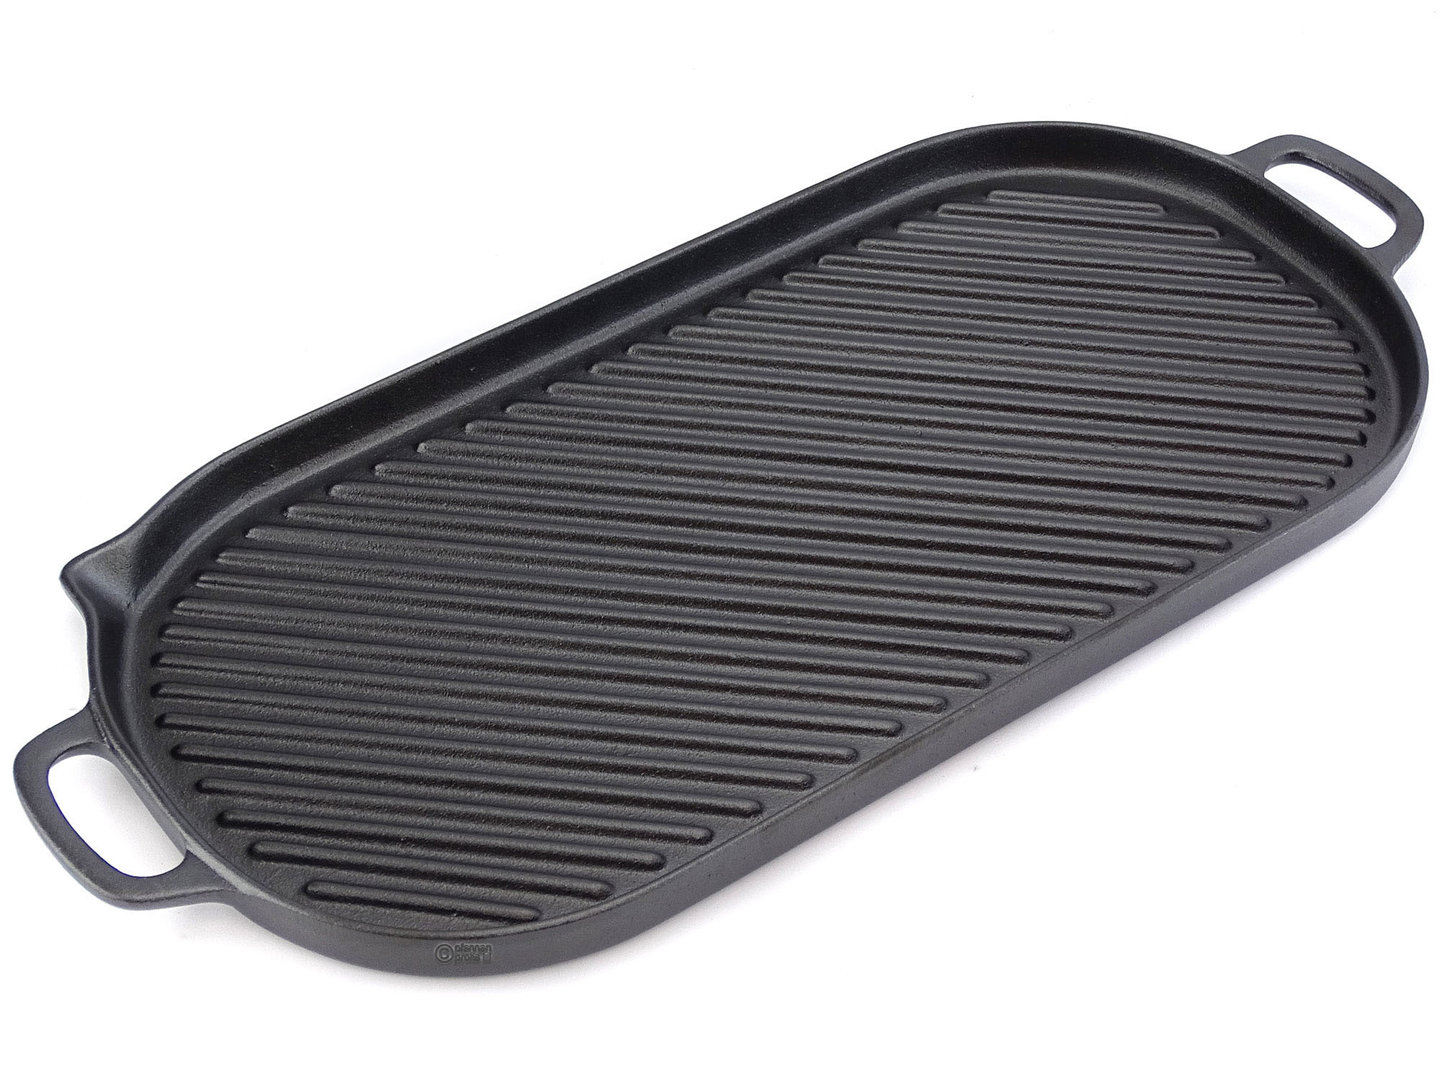 RONNEBY BRUK cast iron griddle 23x47 cm, pre-seasoned